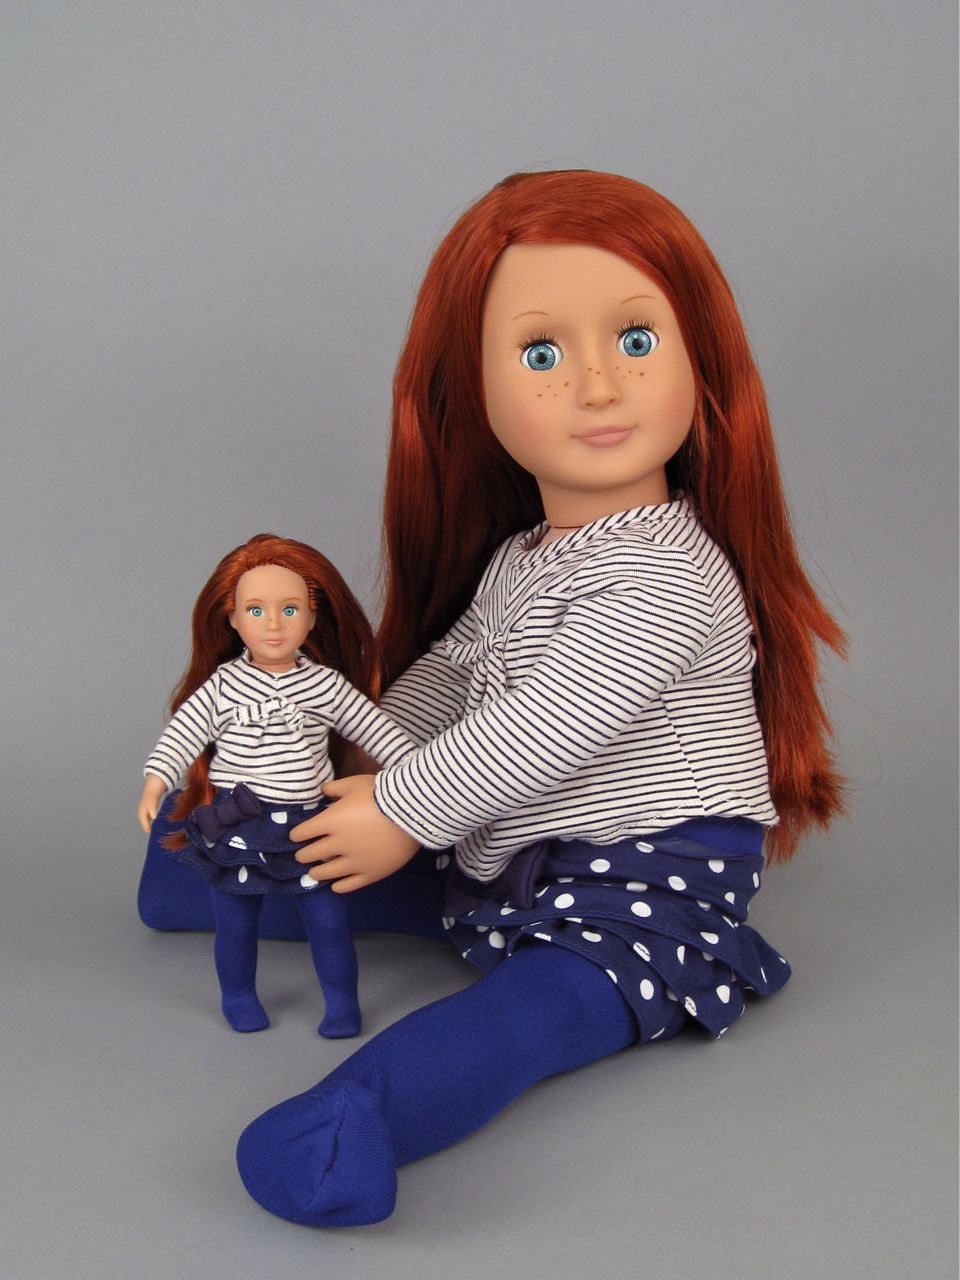 Small Toy Dolls : Our generation mini dolls by battat the toy box philosopher